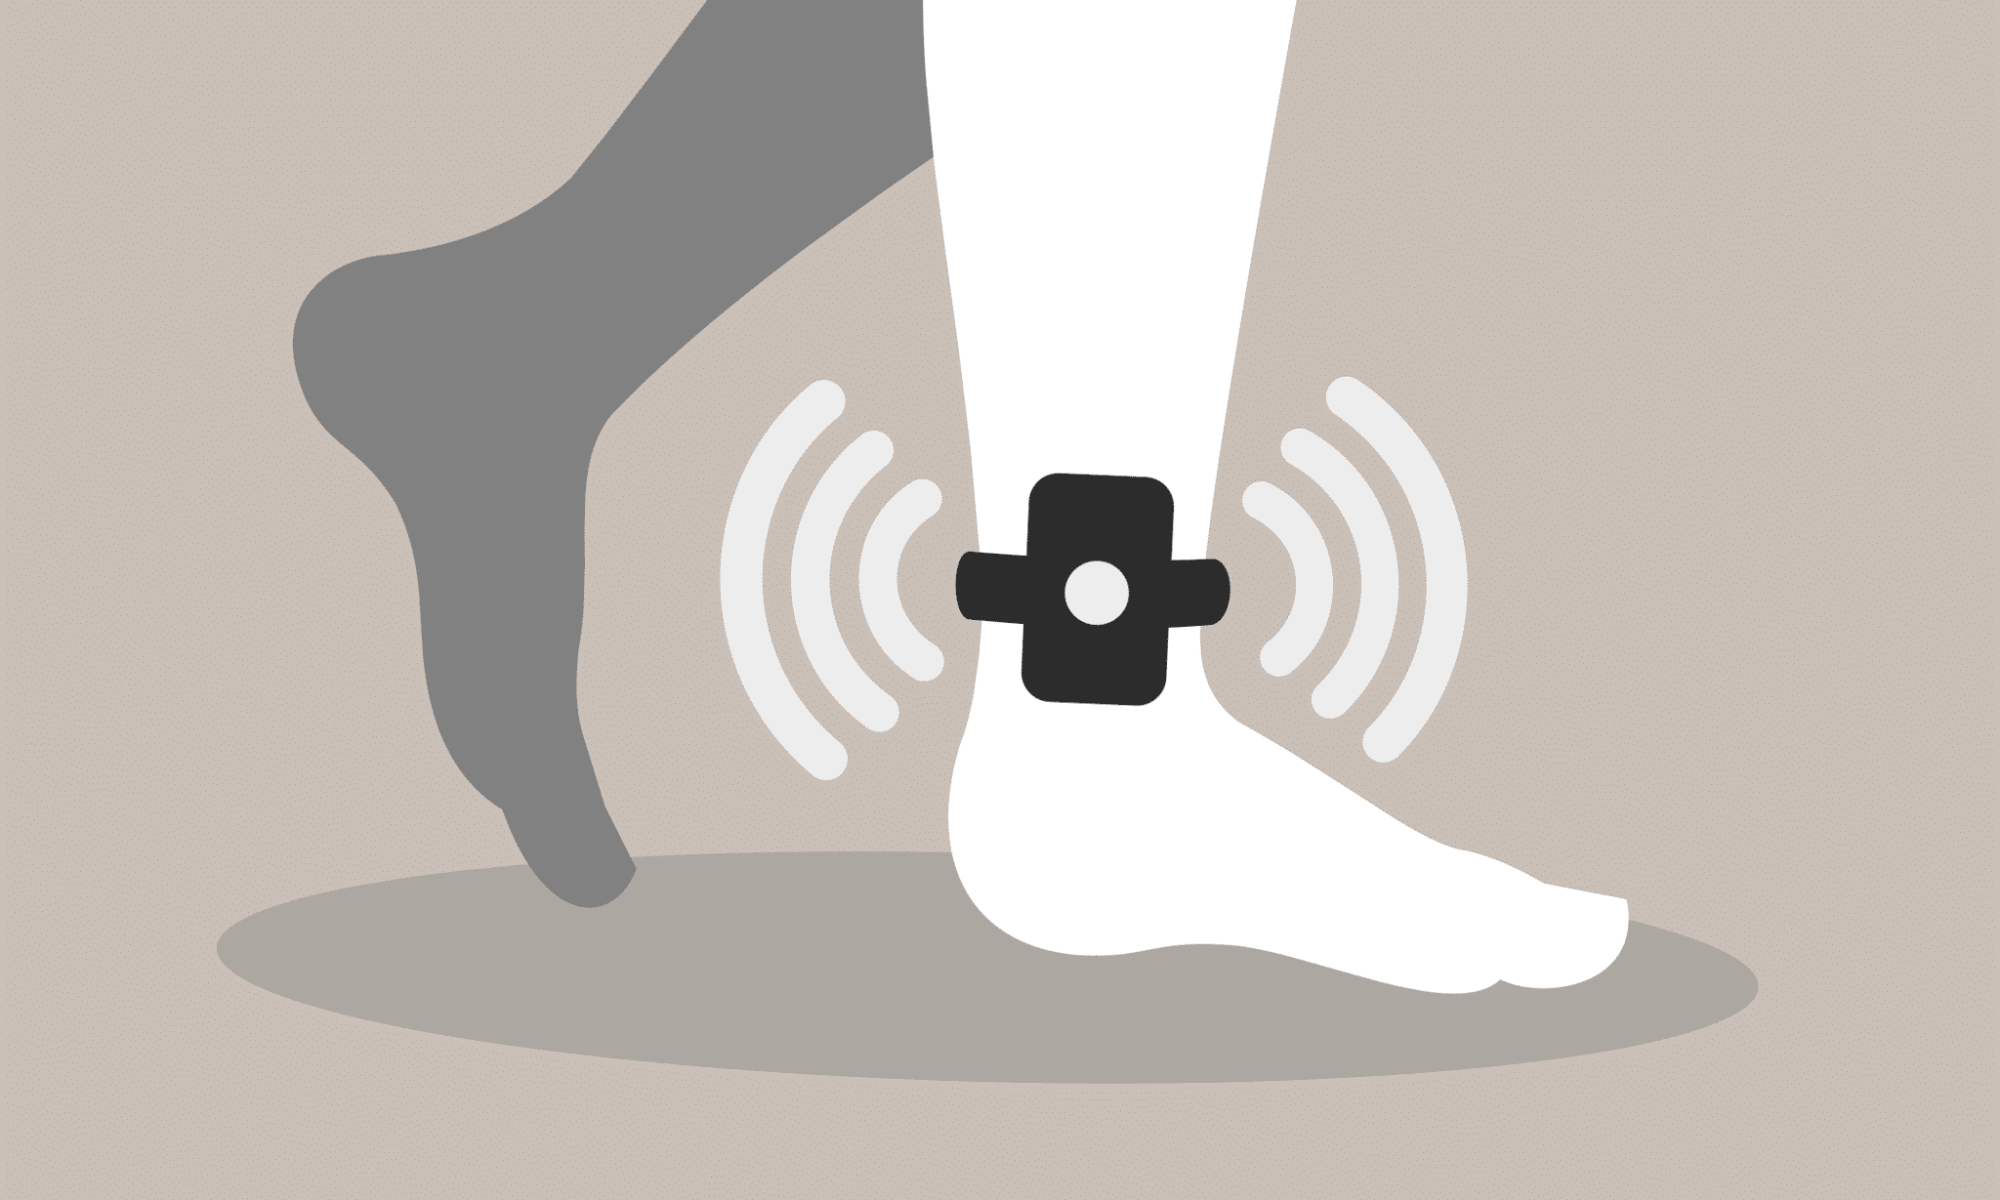 Graphic representing a DUI ankle monitor, or SCRAM